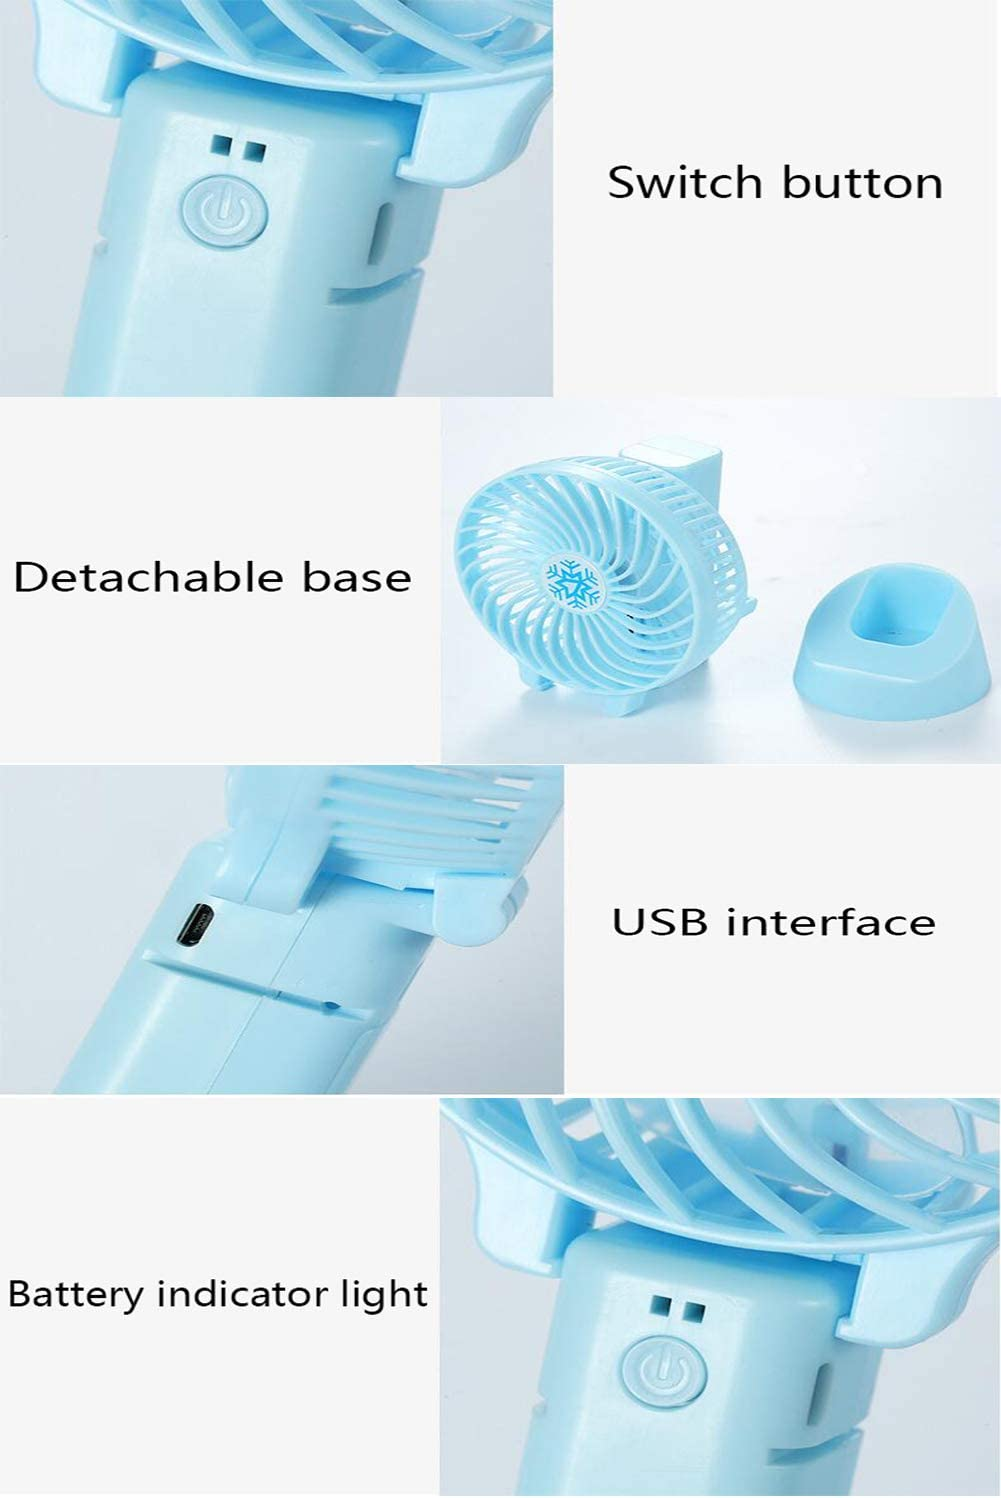 Lh$yu Portable Mini Fan,USB Foldable Desktop Table Cooling Hand Fan for Office Outdoor Sport Household Traveling Camping,White